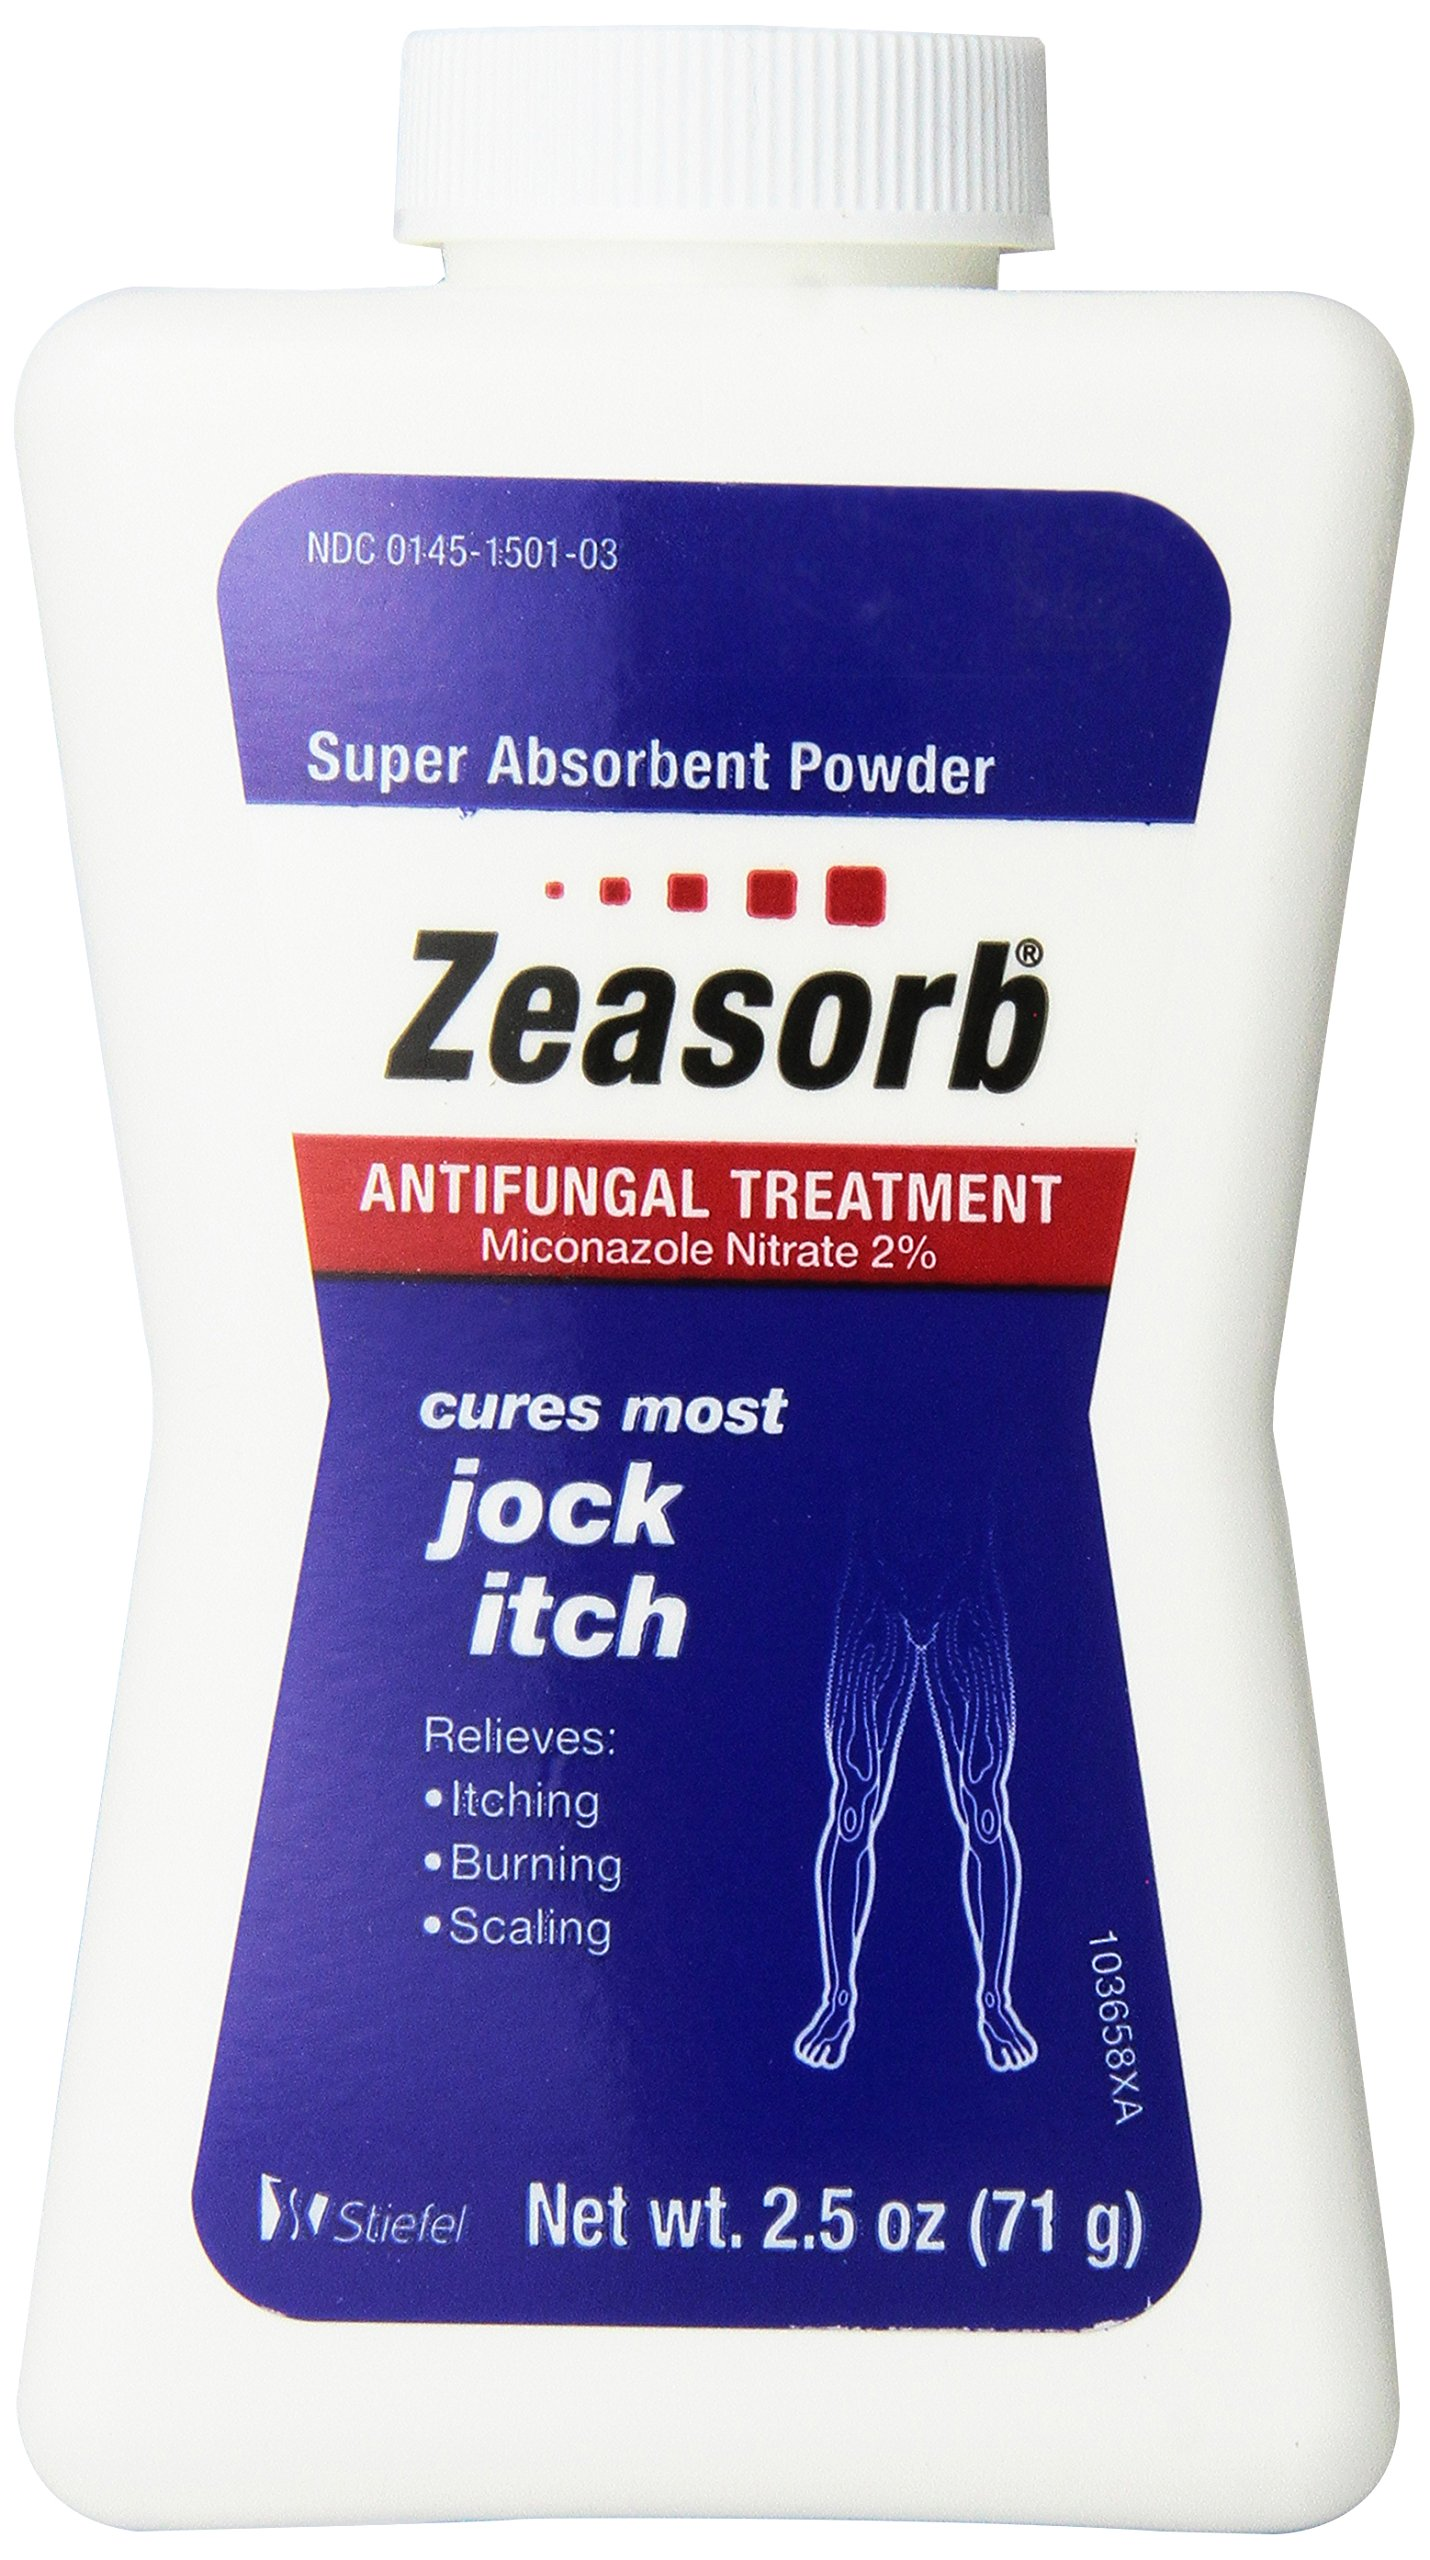 Zeasorb Antifungal Treatment Powder, Jock Itch 2.5 Oz (3 Pack) by Zeasorb